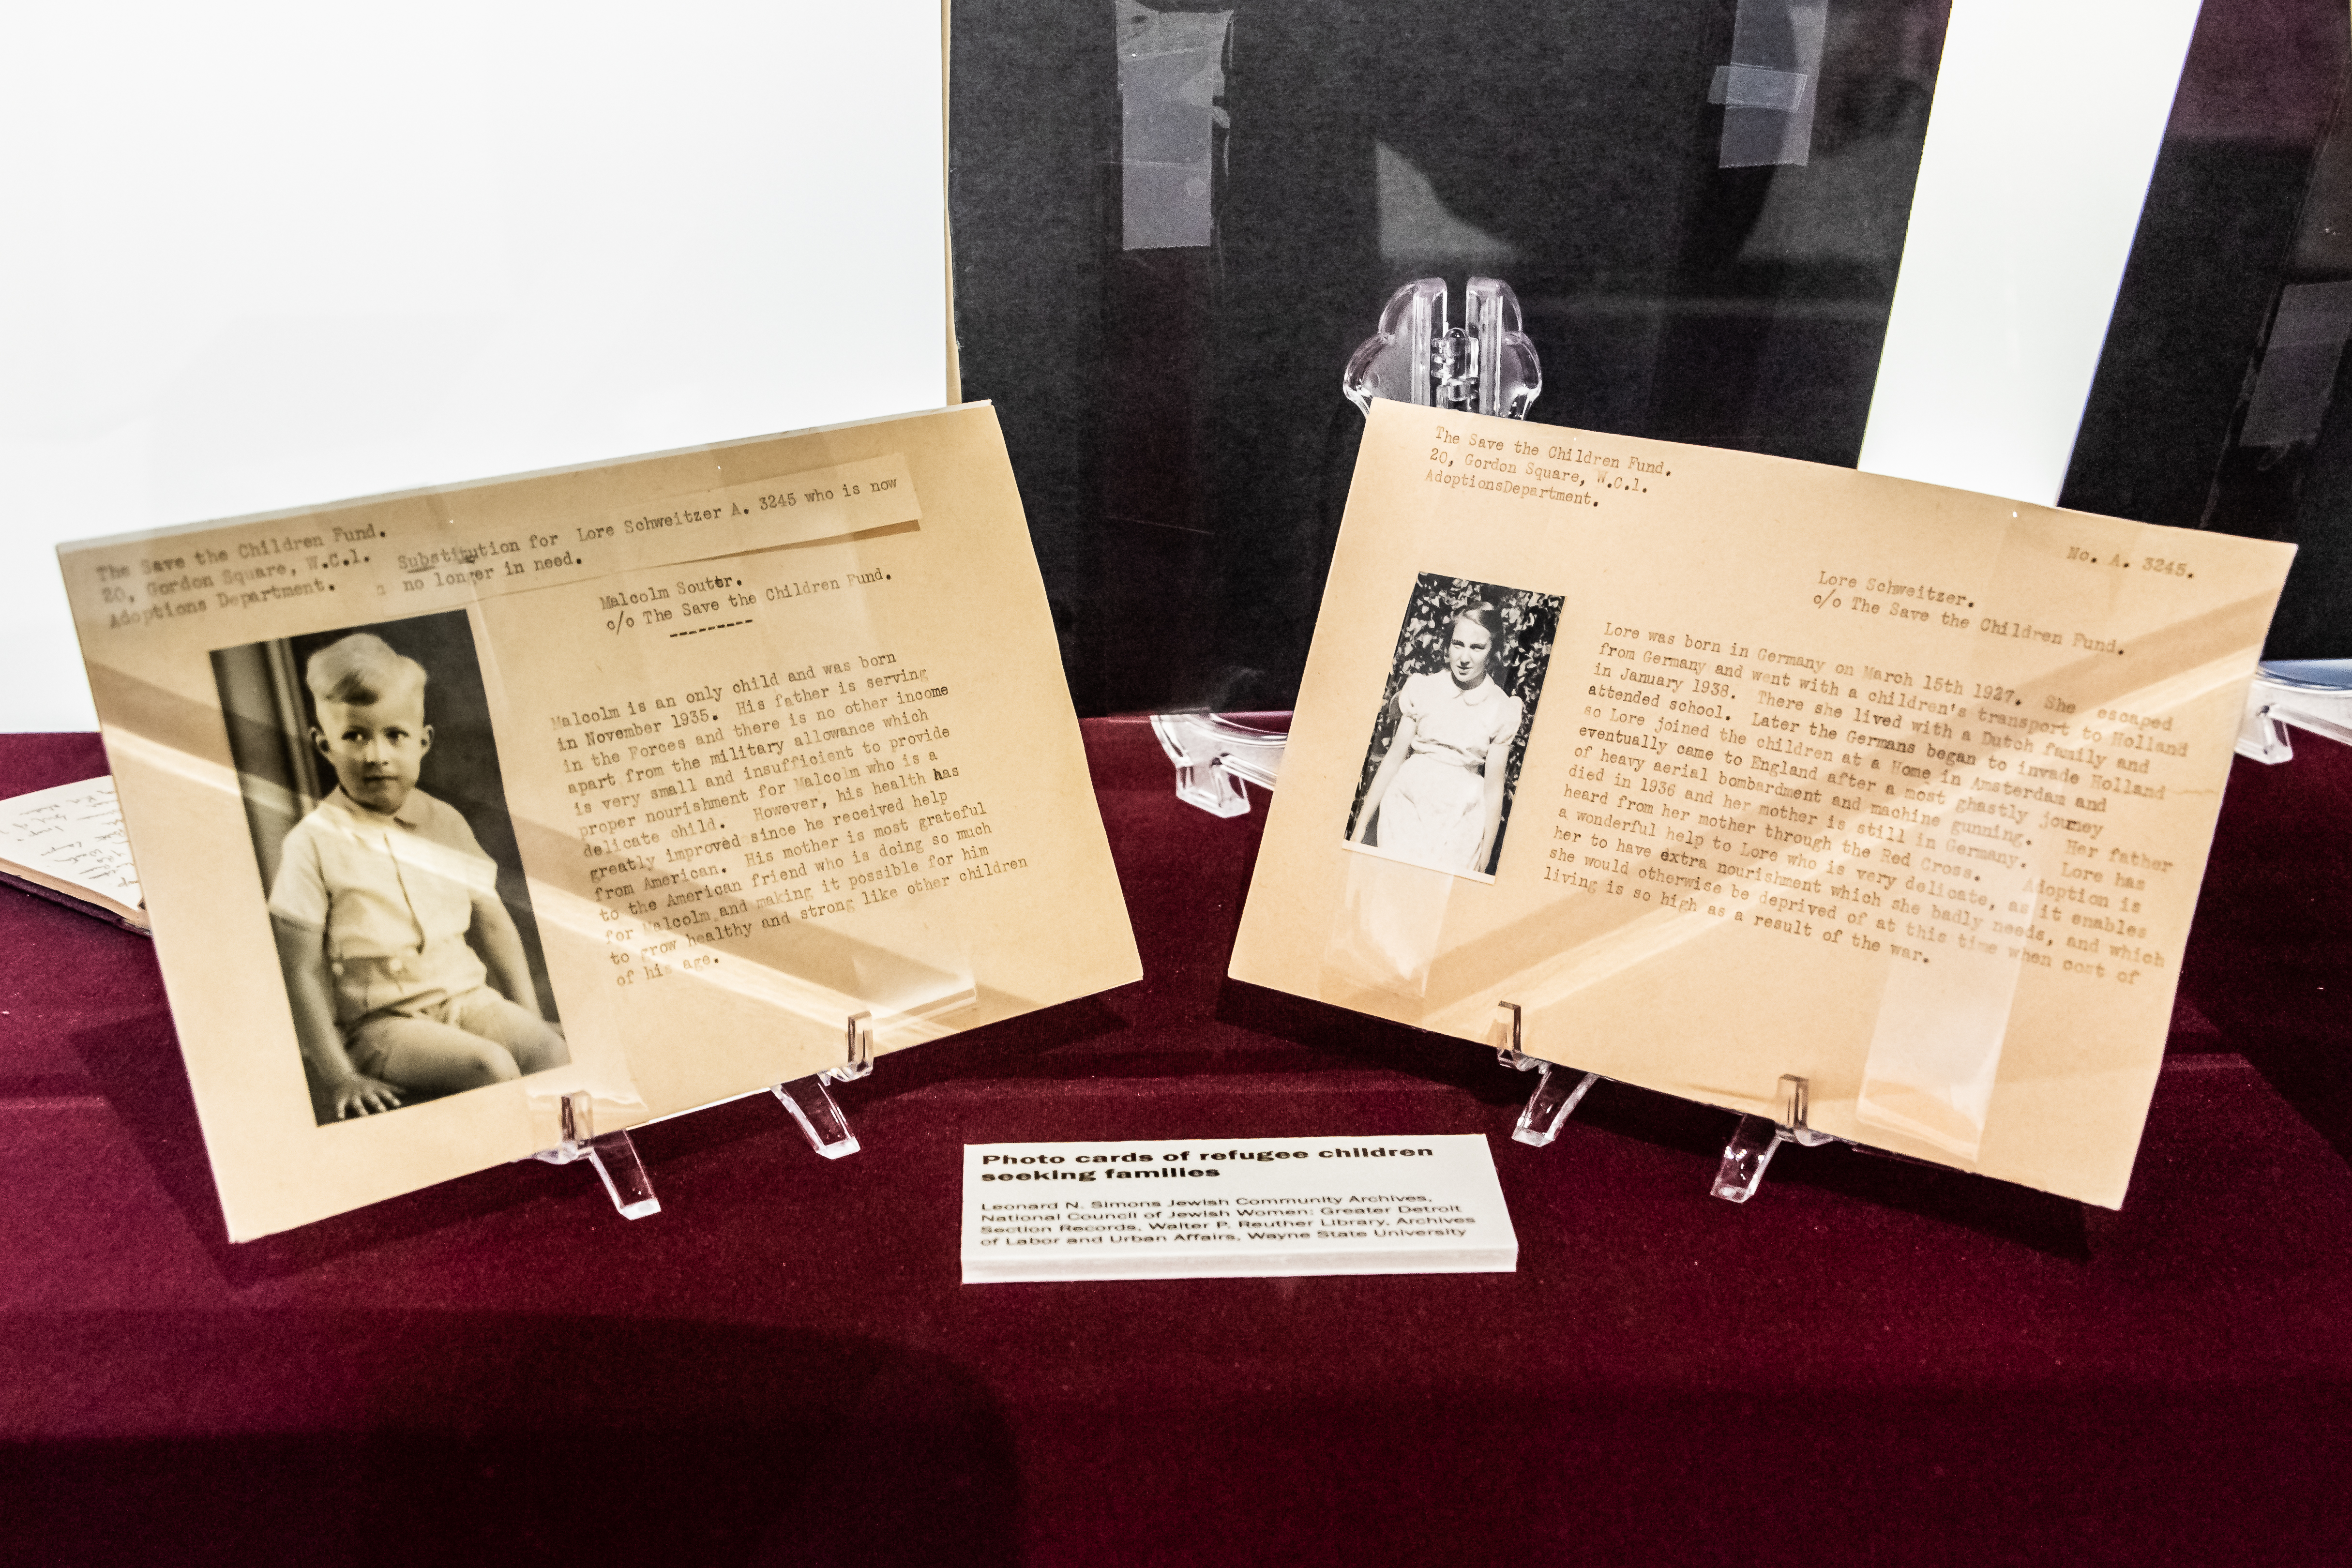 images of Jewish News articles on the Holocaust and the rise of Nazism